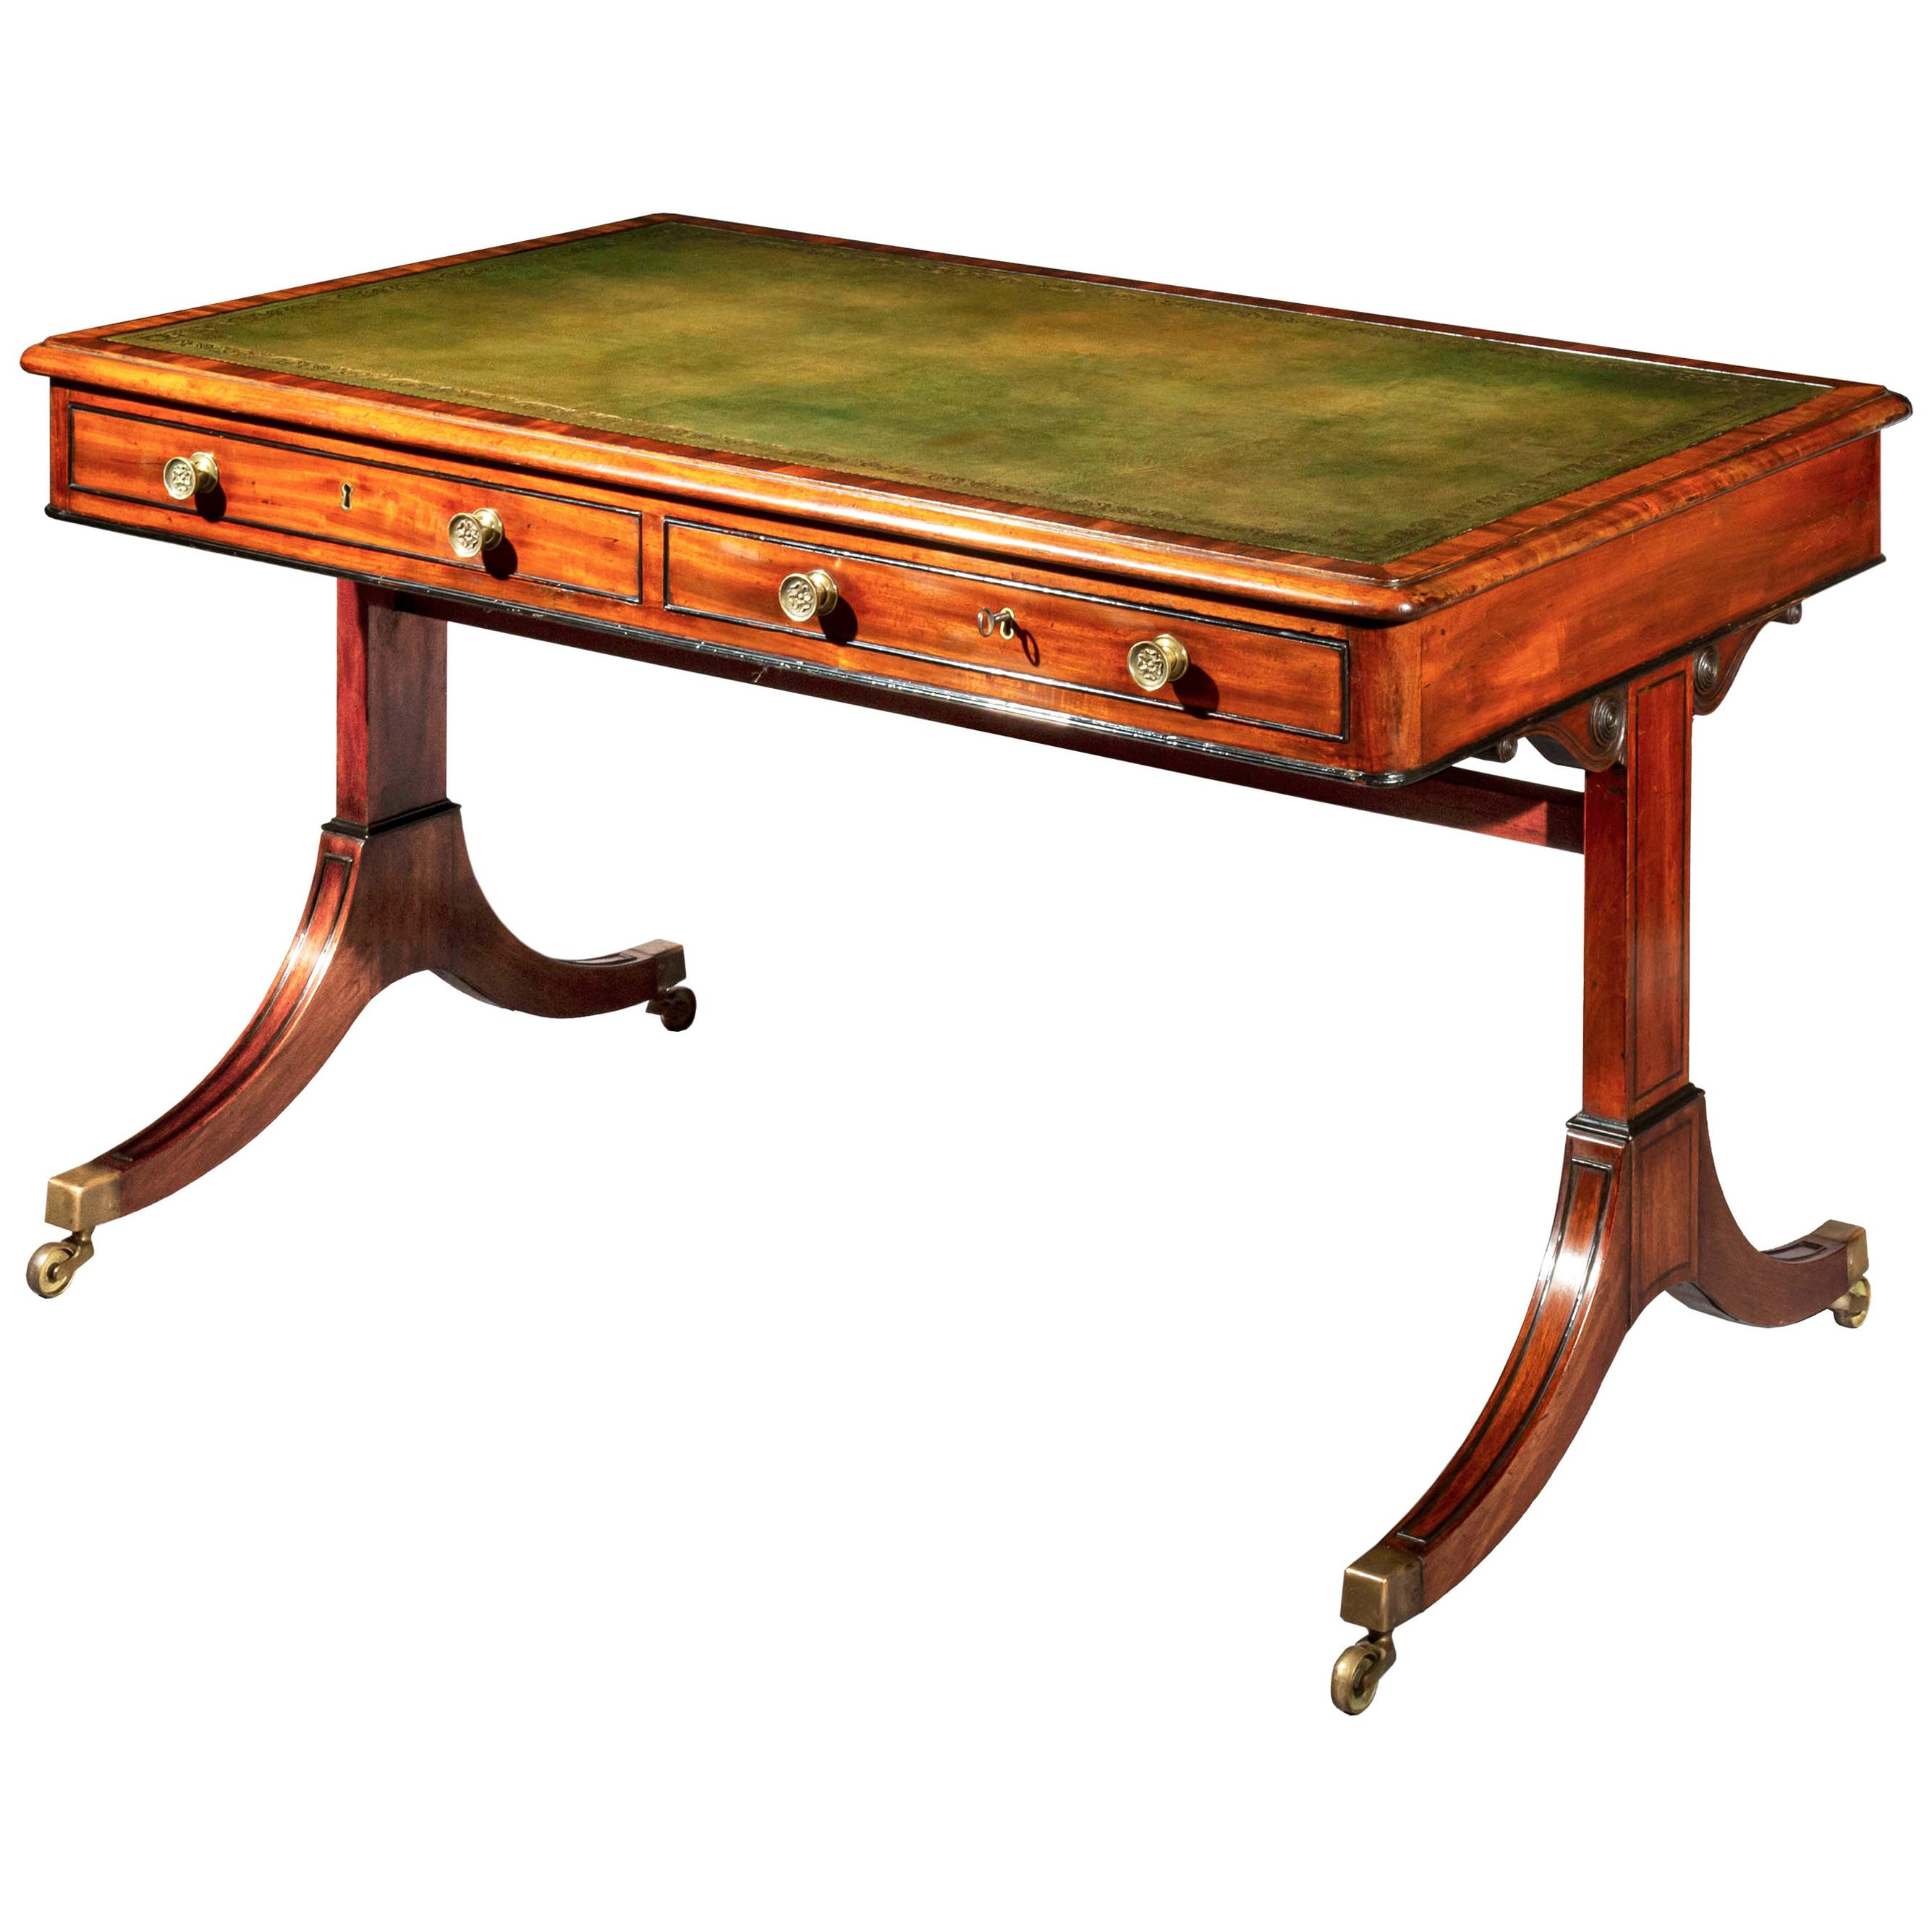 Antique Regency Desk or Writing Table